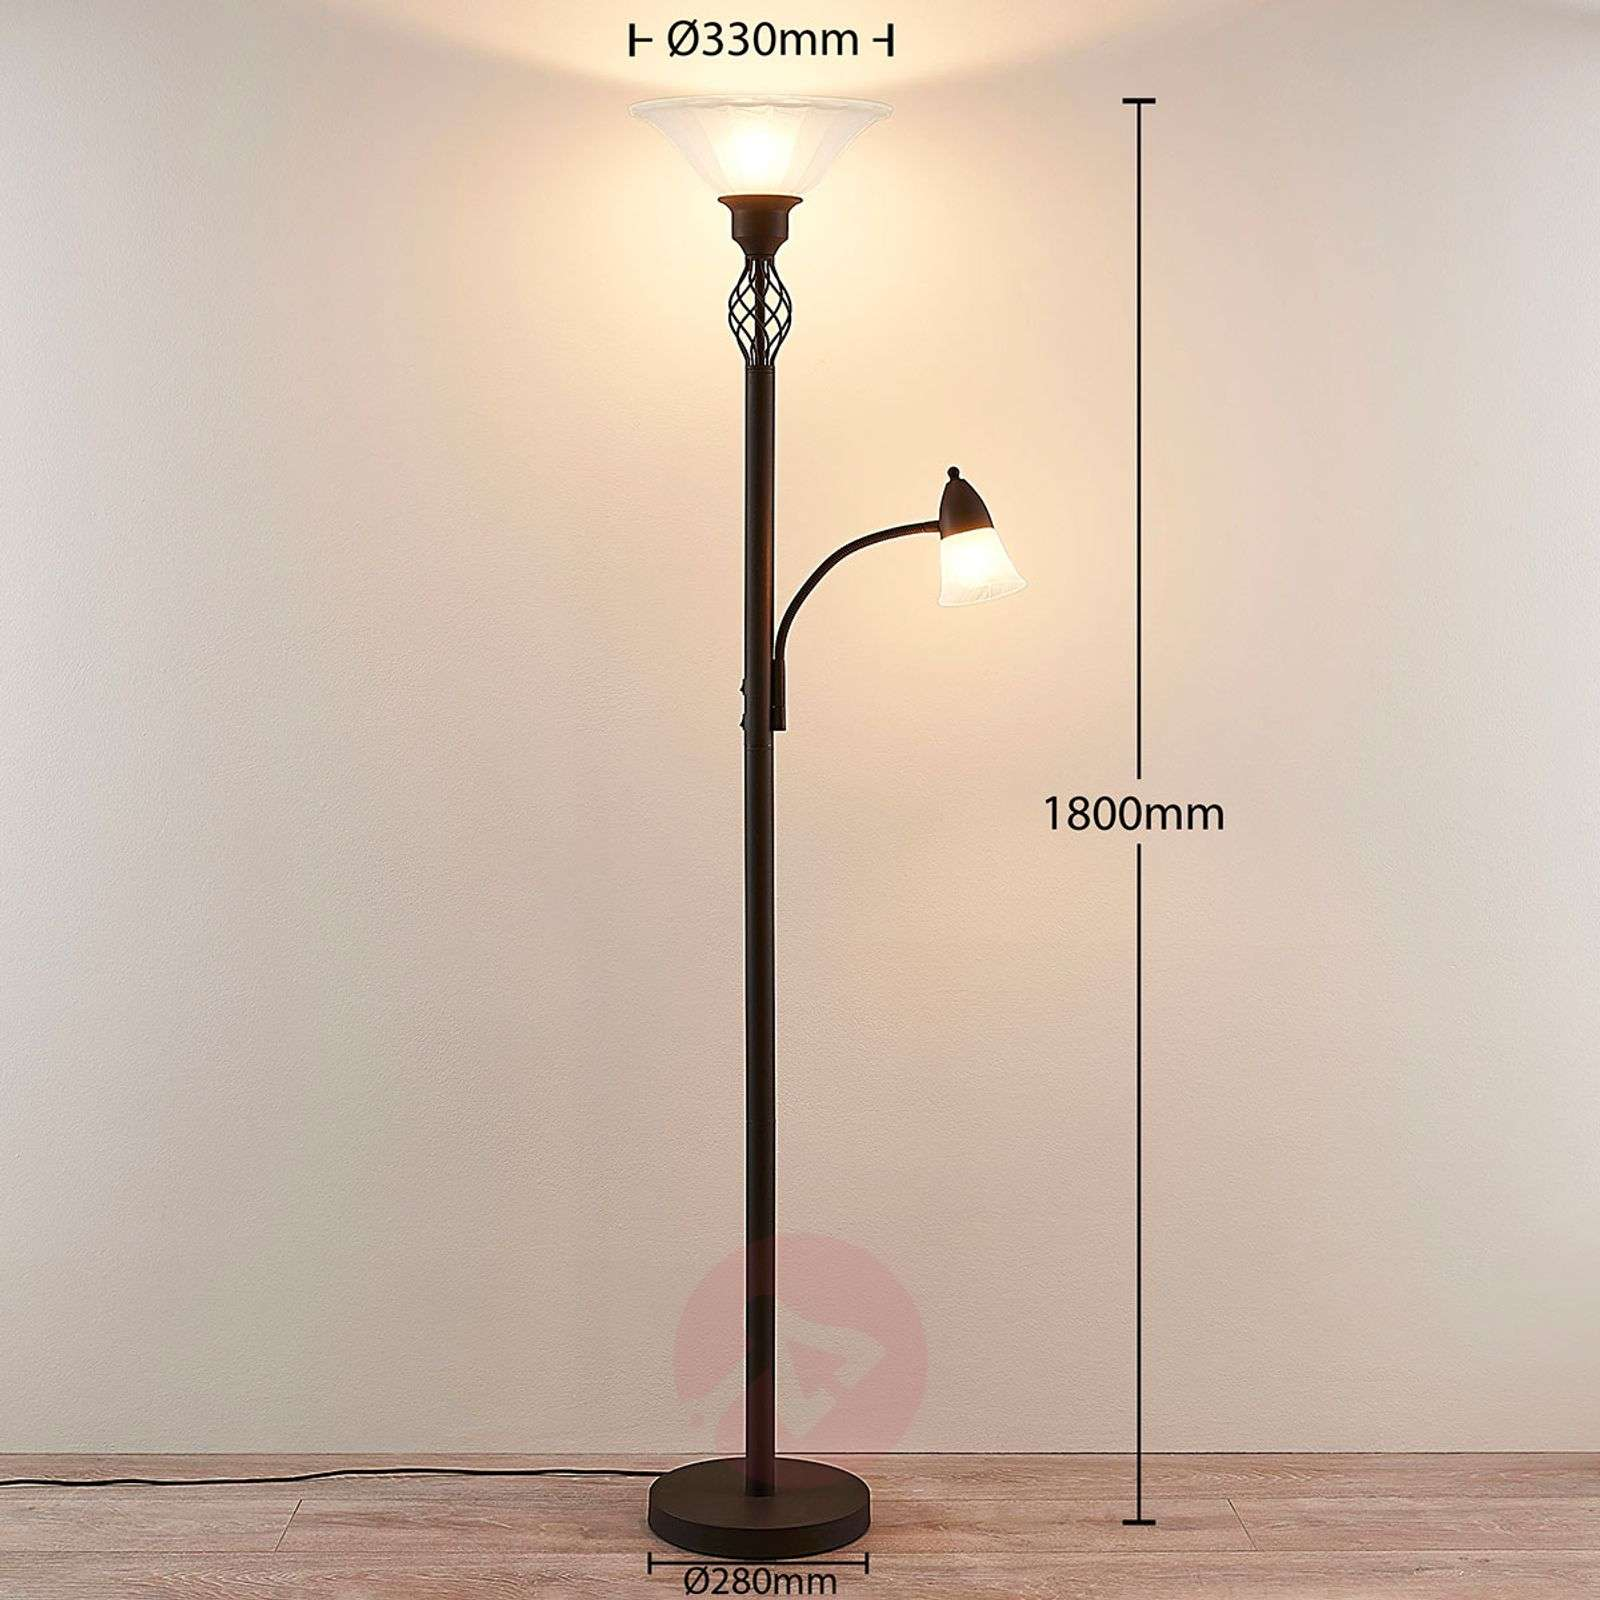 Dunja LED uplighter with a reading light-9620273-033